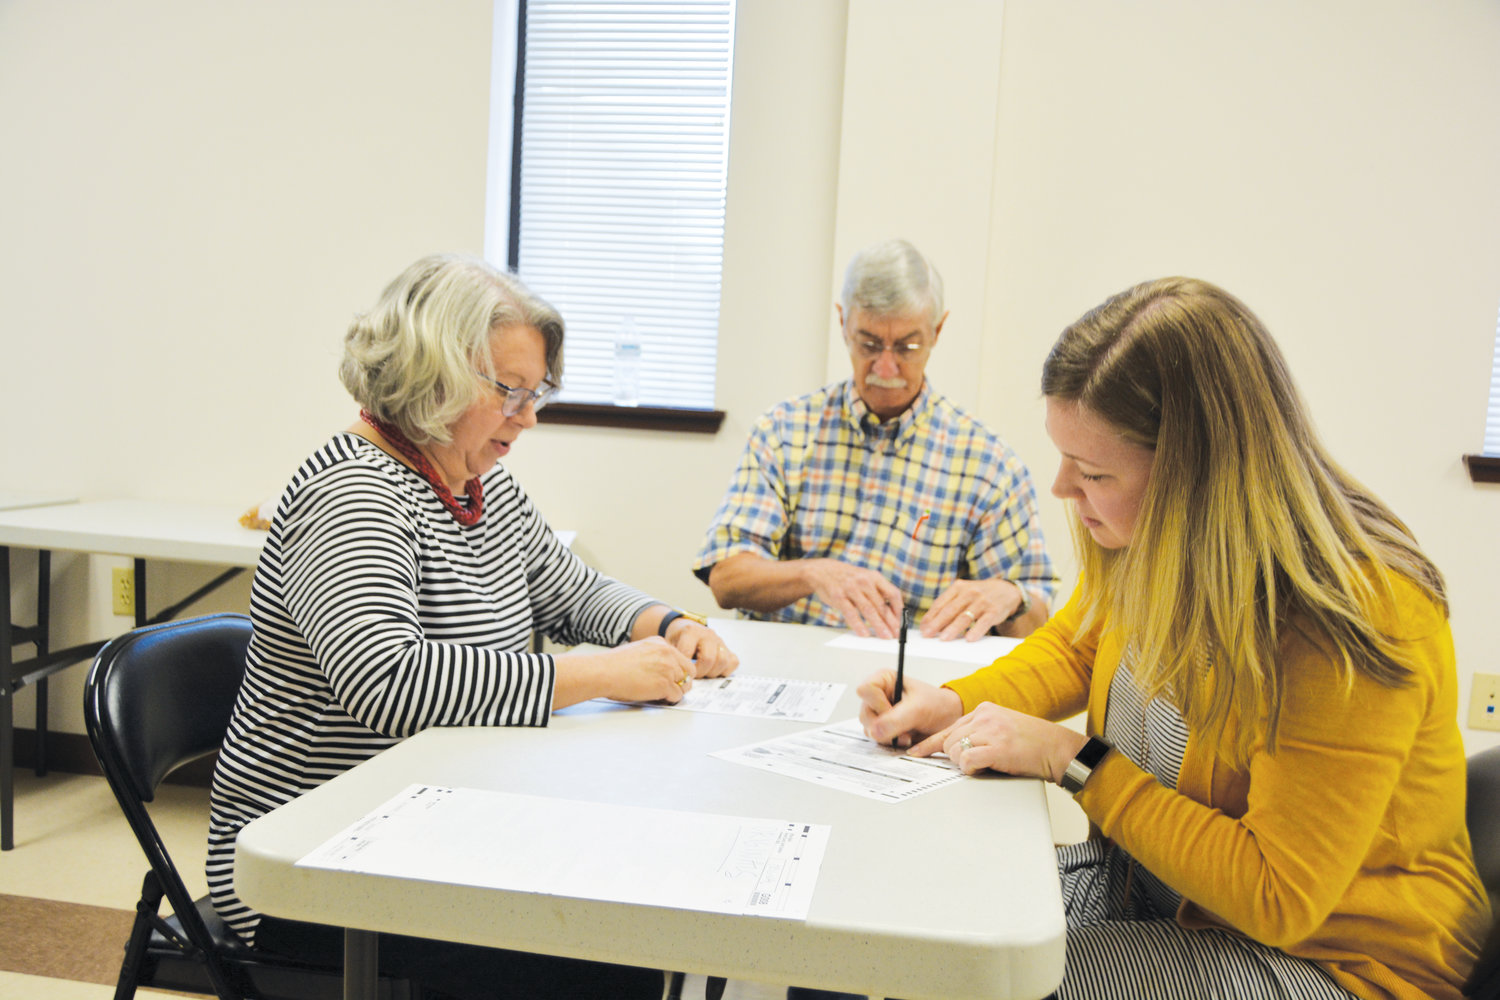 Northwest Harnett election judges duplicate ballots at the Harnett County Board of Elections Wednesday. Brenda Schmadeke, at left, is reading ballots while Amanda Duntz, at right, fills out ballots. Chief Judge Charles Stirewalt is overseeing the proceedings.